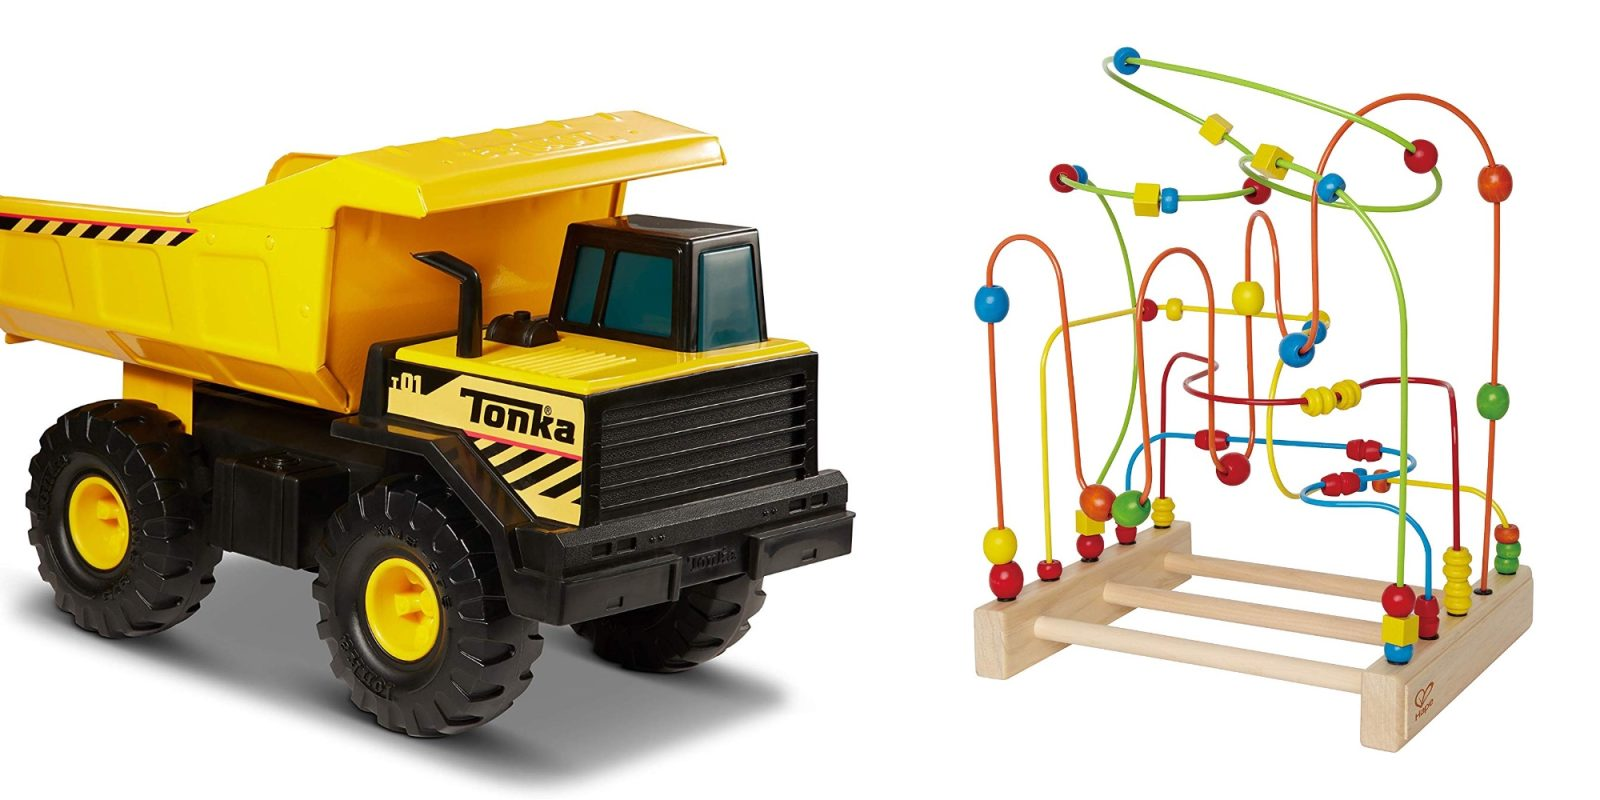 Save up to 44% on toys from Tonka, Battat, Melissa & Doug, more starting at $5